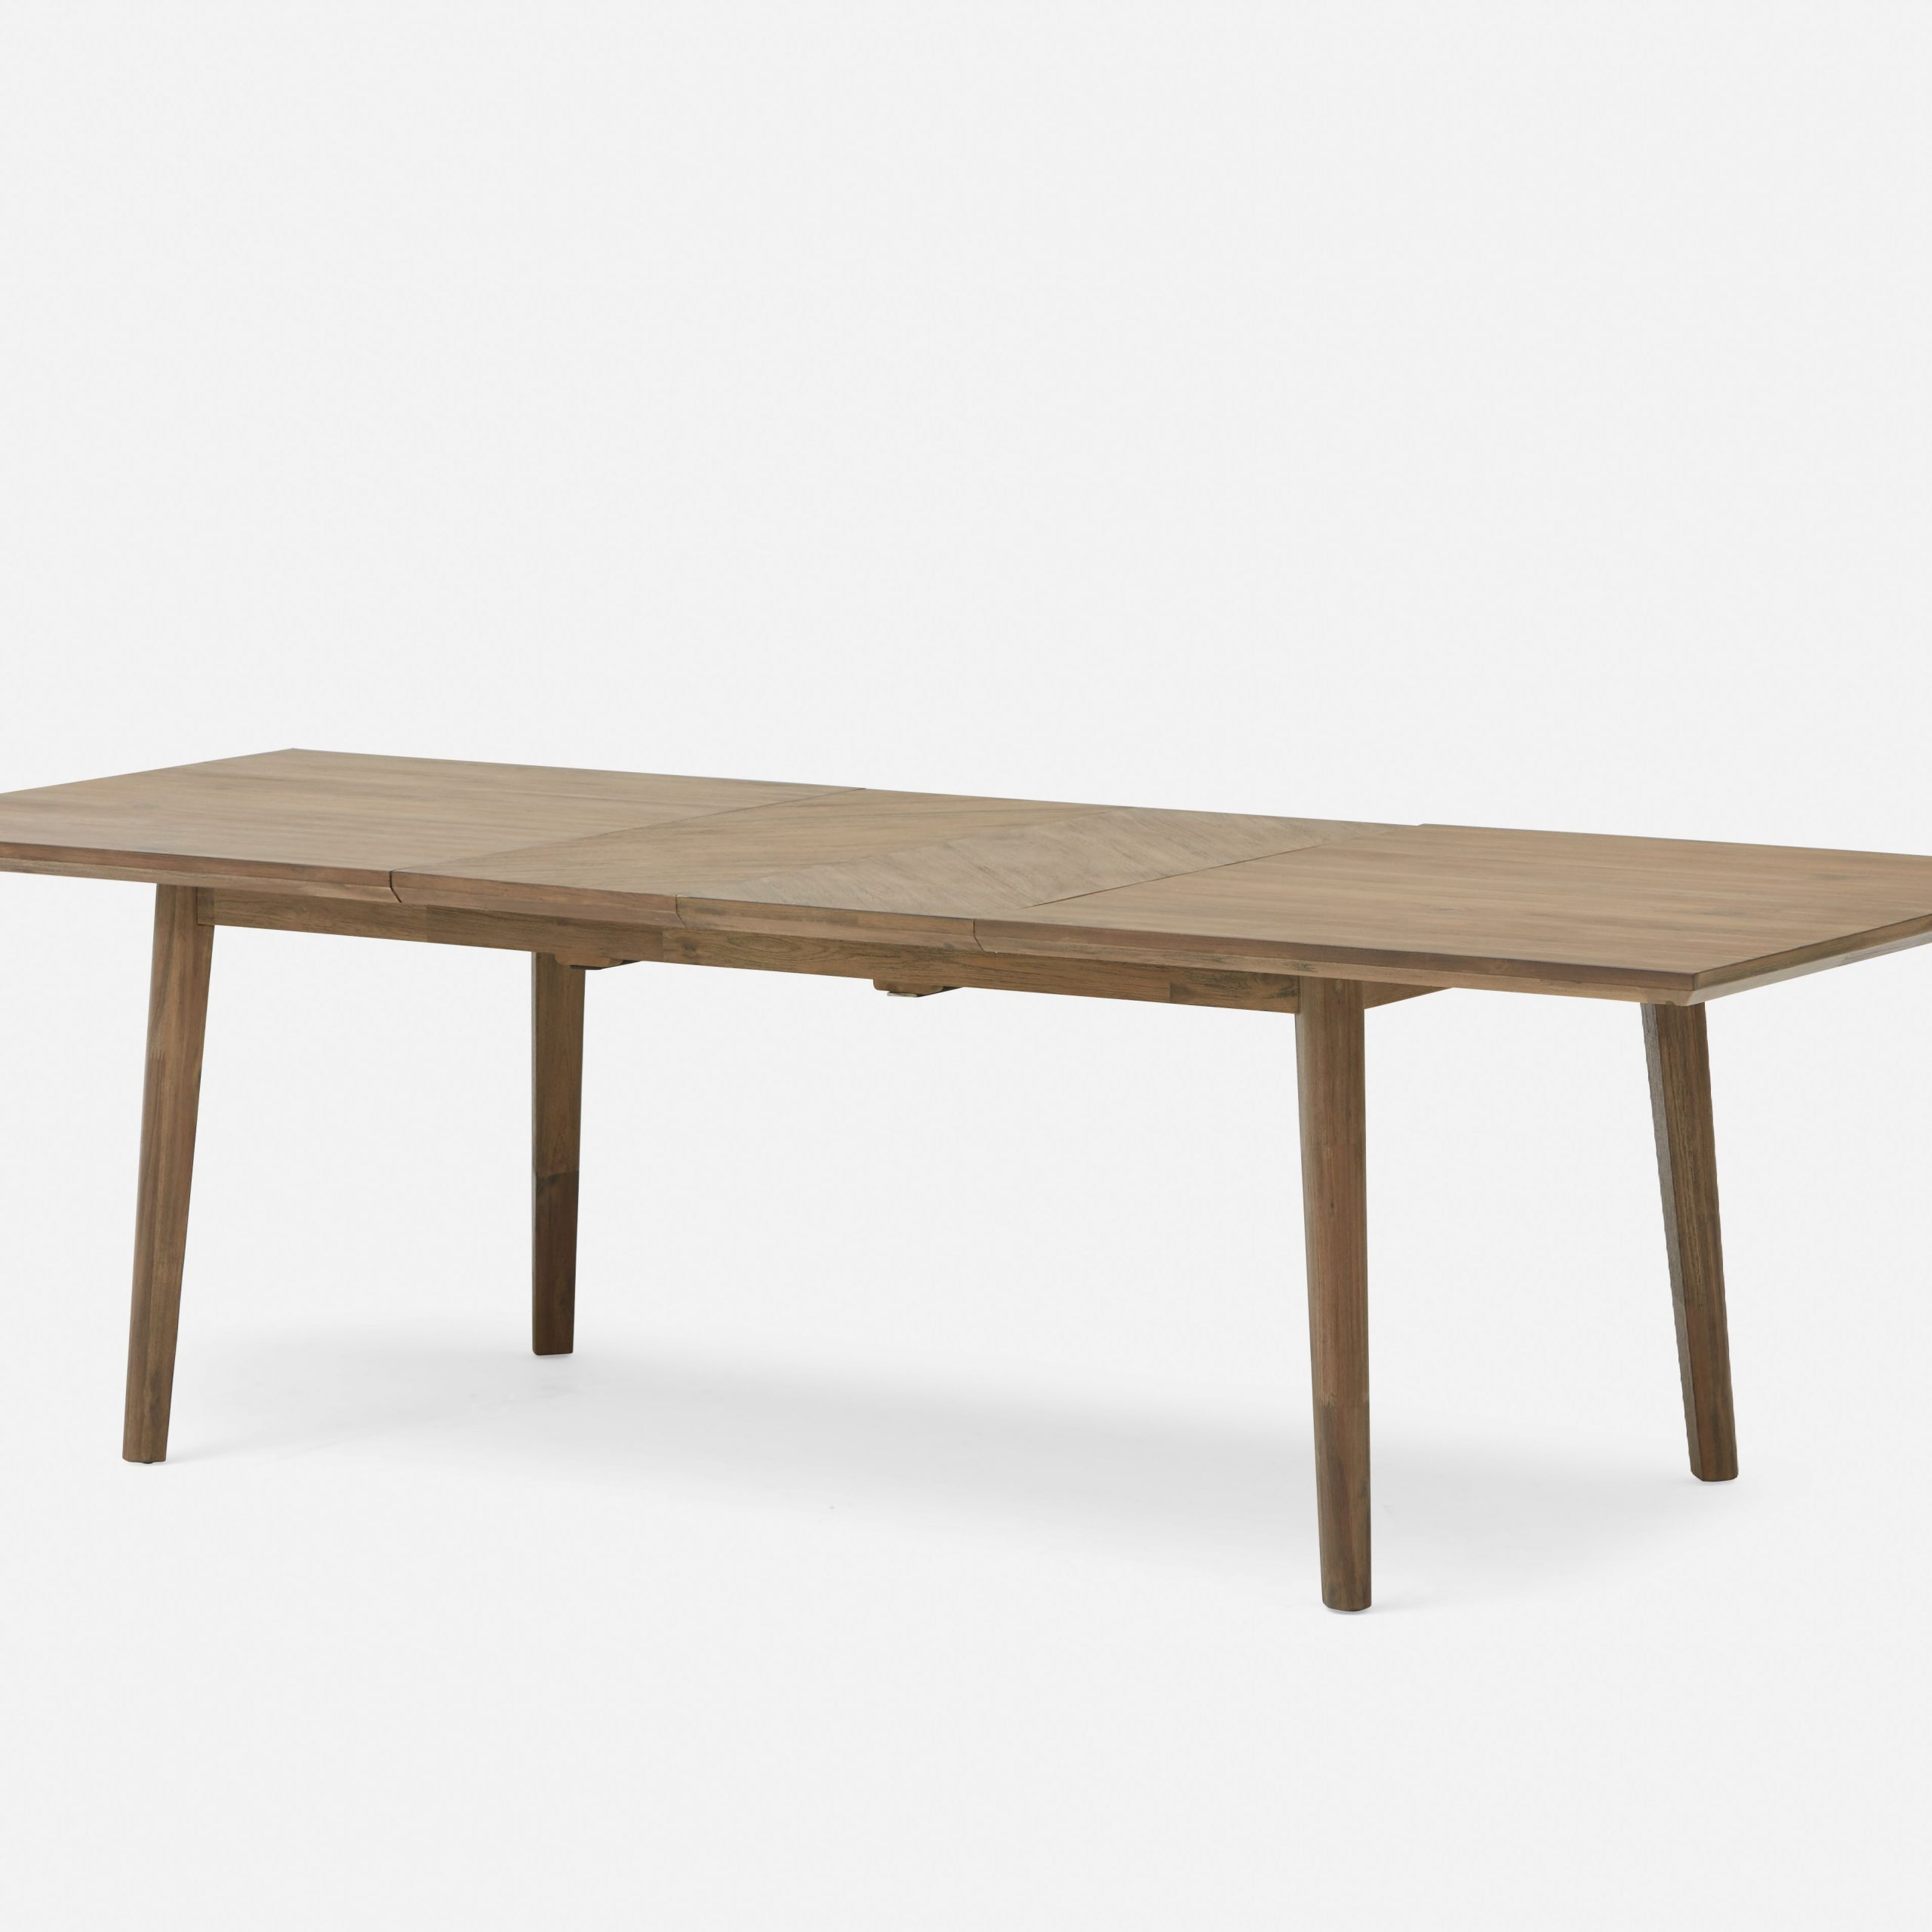 Shaw Dining Tables, English Brown Throughout Preferred Dina Brown Extendable Acacia Wood Dining Table 180Cm To 260C (View 3 of 25)